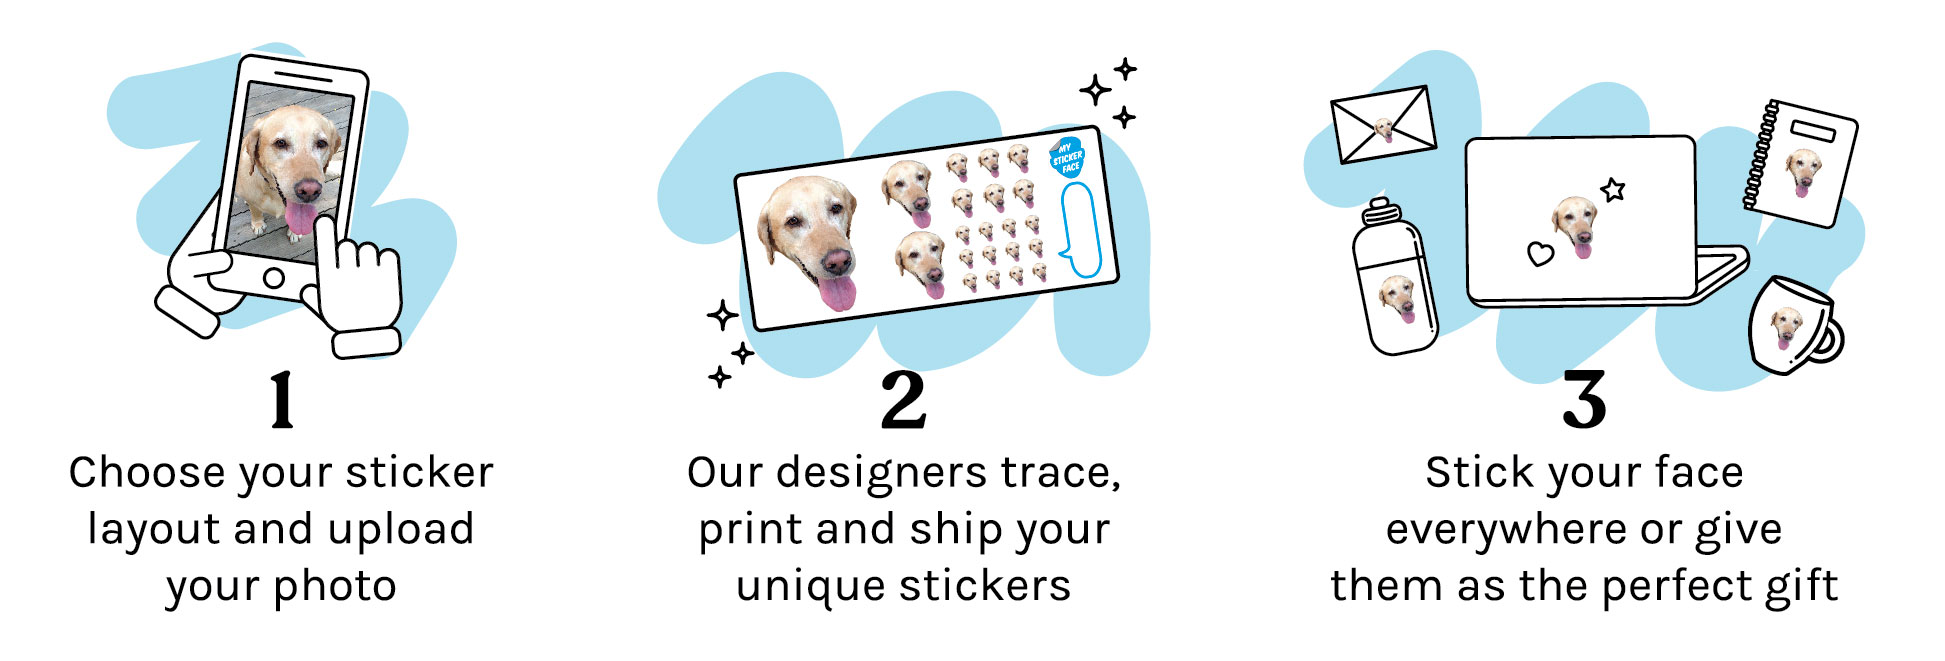 Custom face stickers how to